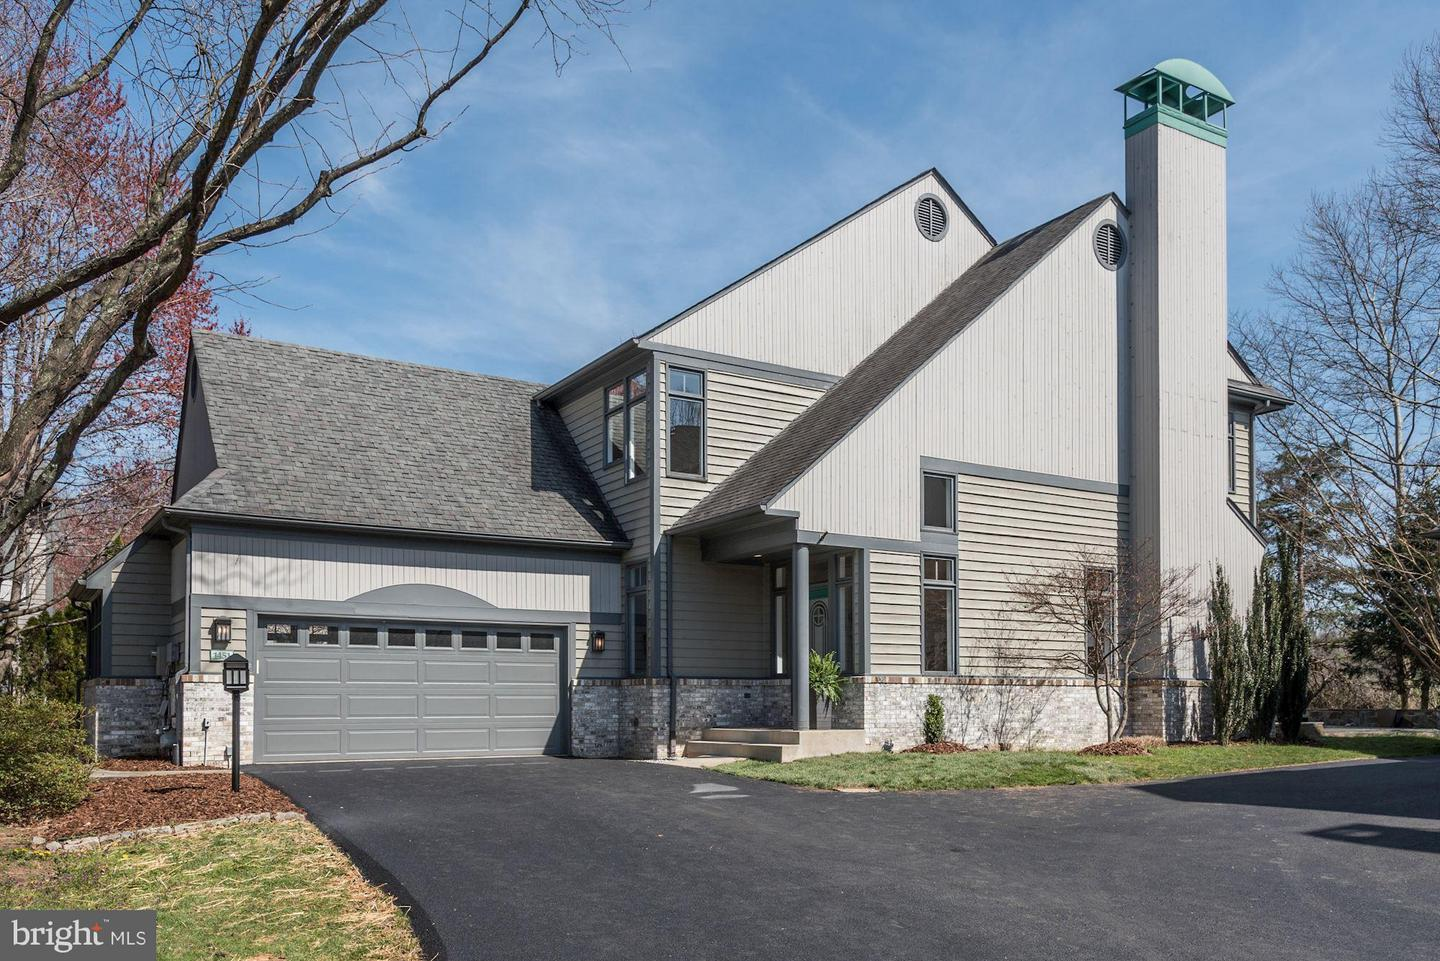 SMASHING 5 BR 4 BA 5,000 FIN SQ FT GULICK HOME UPGRADED W/ HIGH END  FINISHES U0026 AMAZING DESIGN ELEMENTS*FABULOUS OPEN FLOOR PLAN**STATE OF THE  ART KITCHEN ...